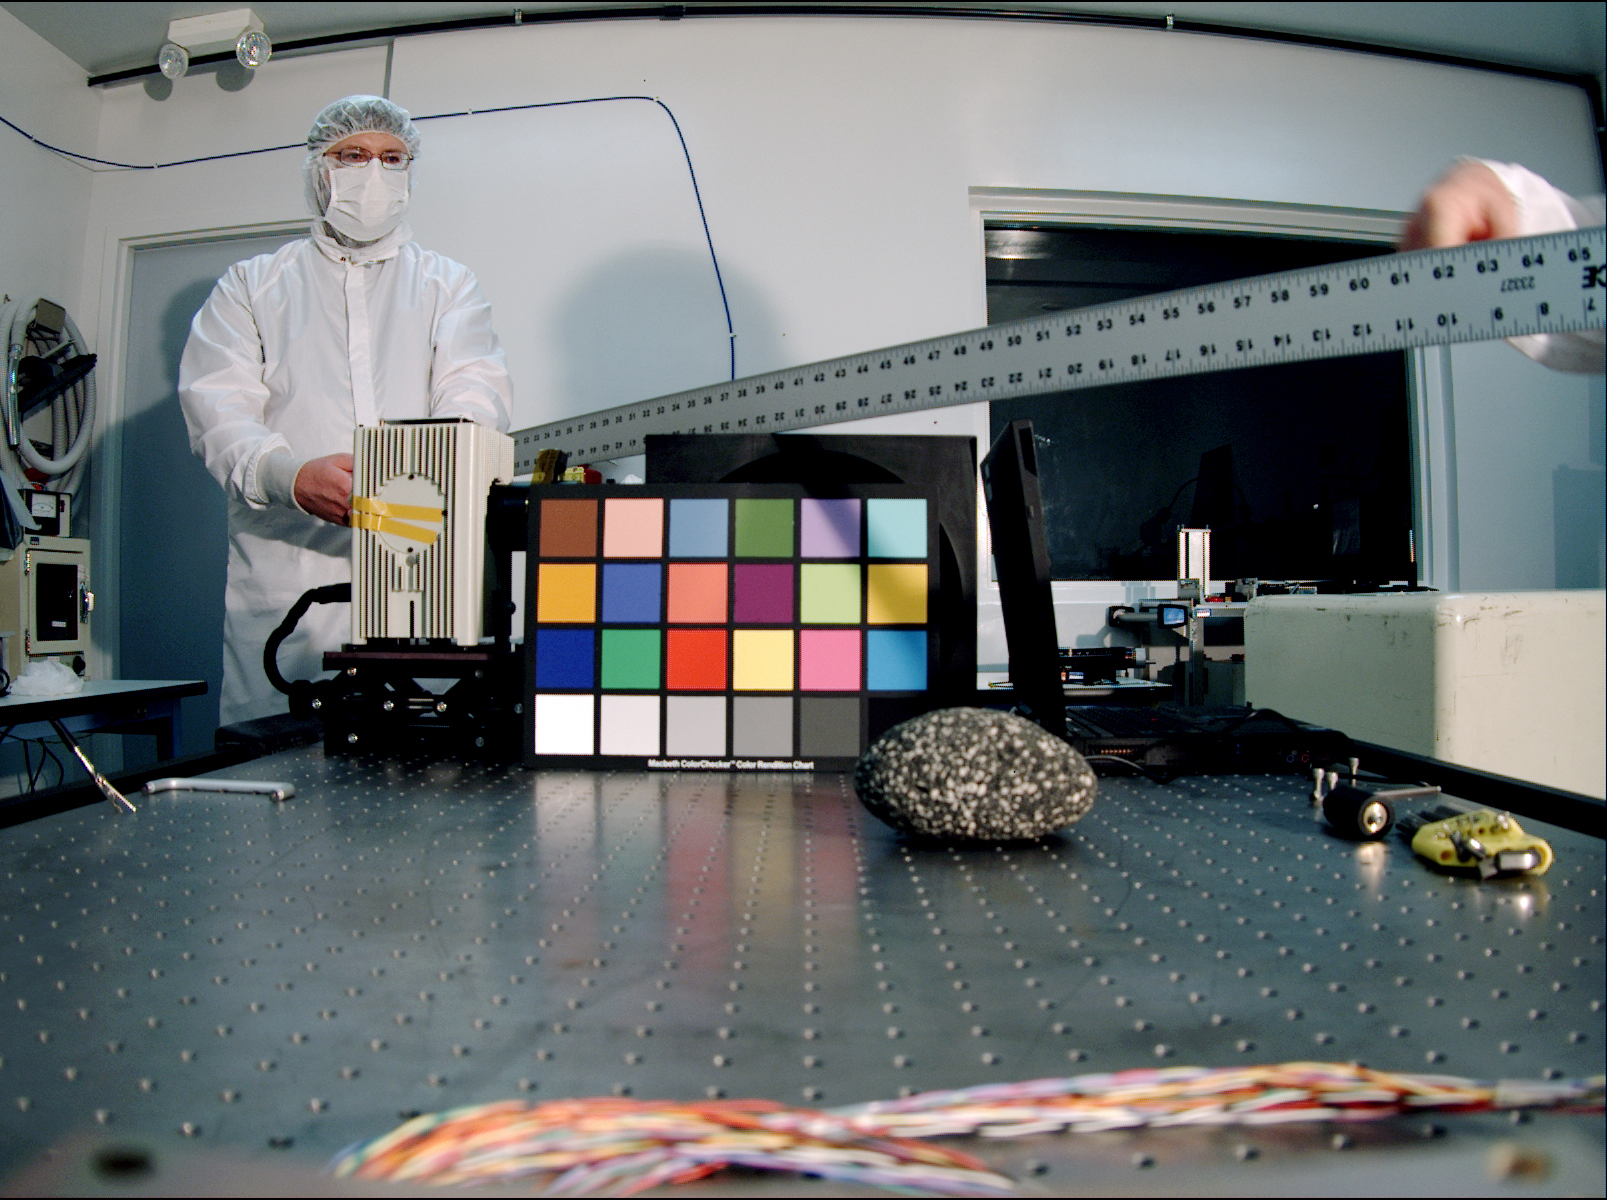 The Mars Descent Imager for NASA's Mars Science Laboratory took this image inside the Malin Space Science Systems clean room in San Diego, Calif., during calibration testing of the camera in June 2008. It shows the instrument's deputy principal investigator, Ken Edgett, holding a six-foot metal ruler that was used as a depth-of-field test target.